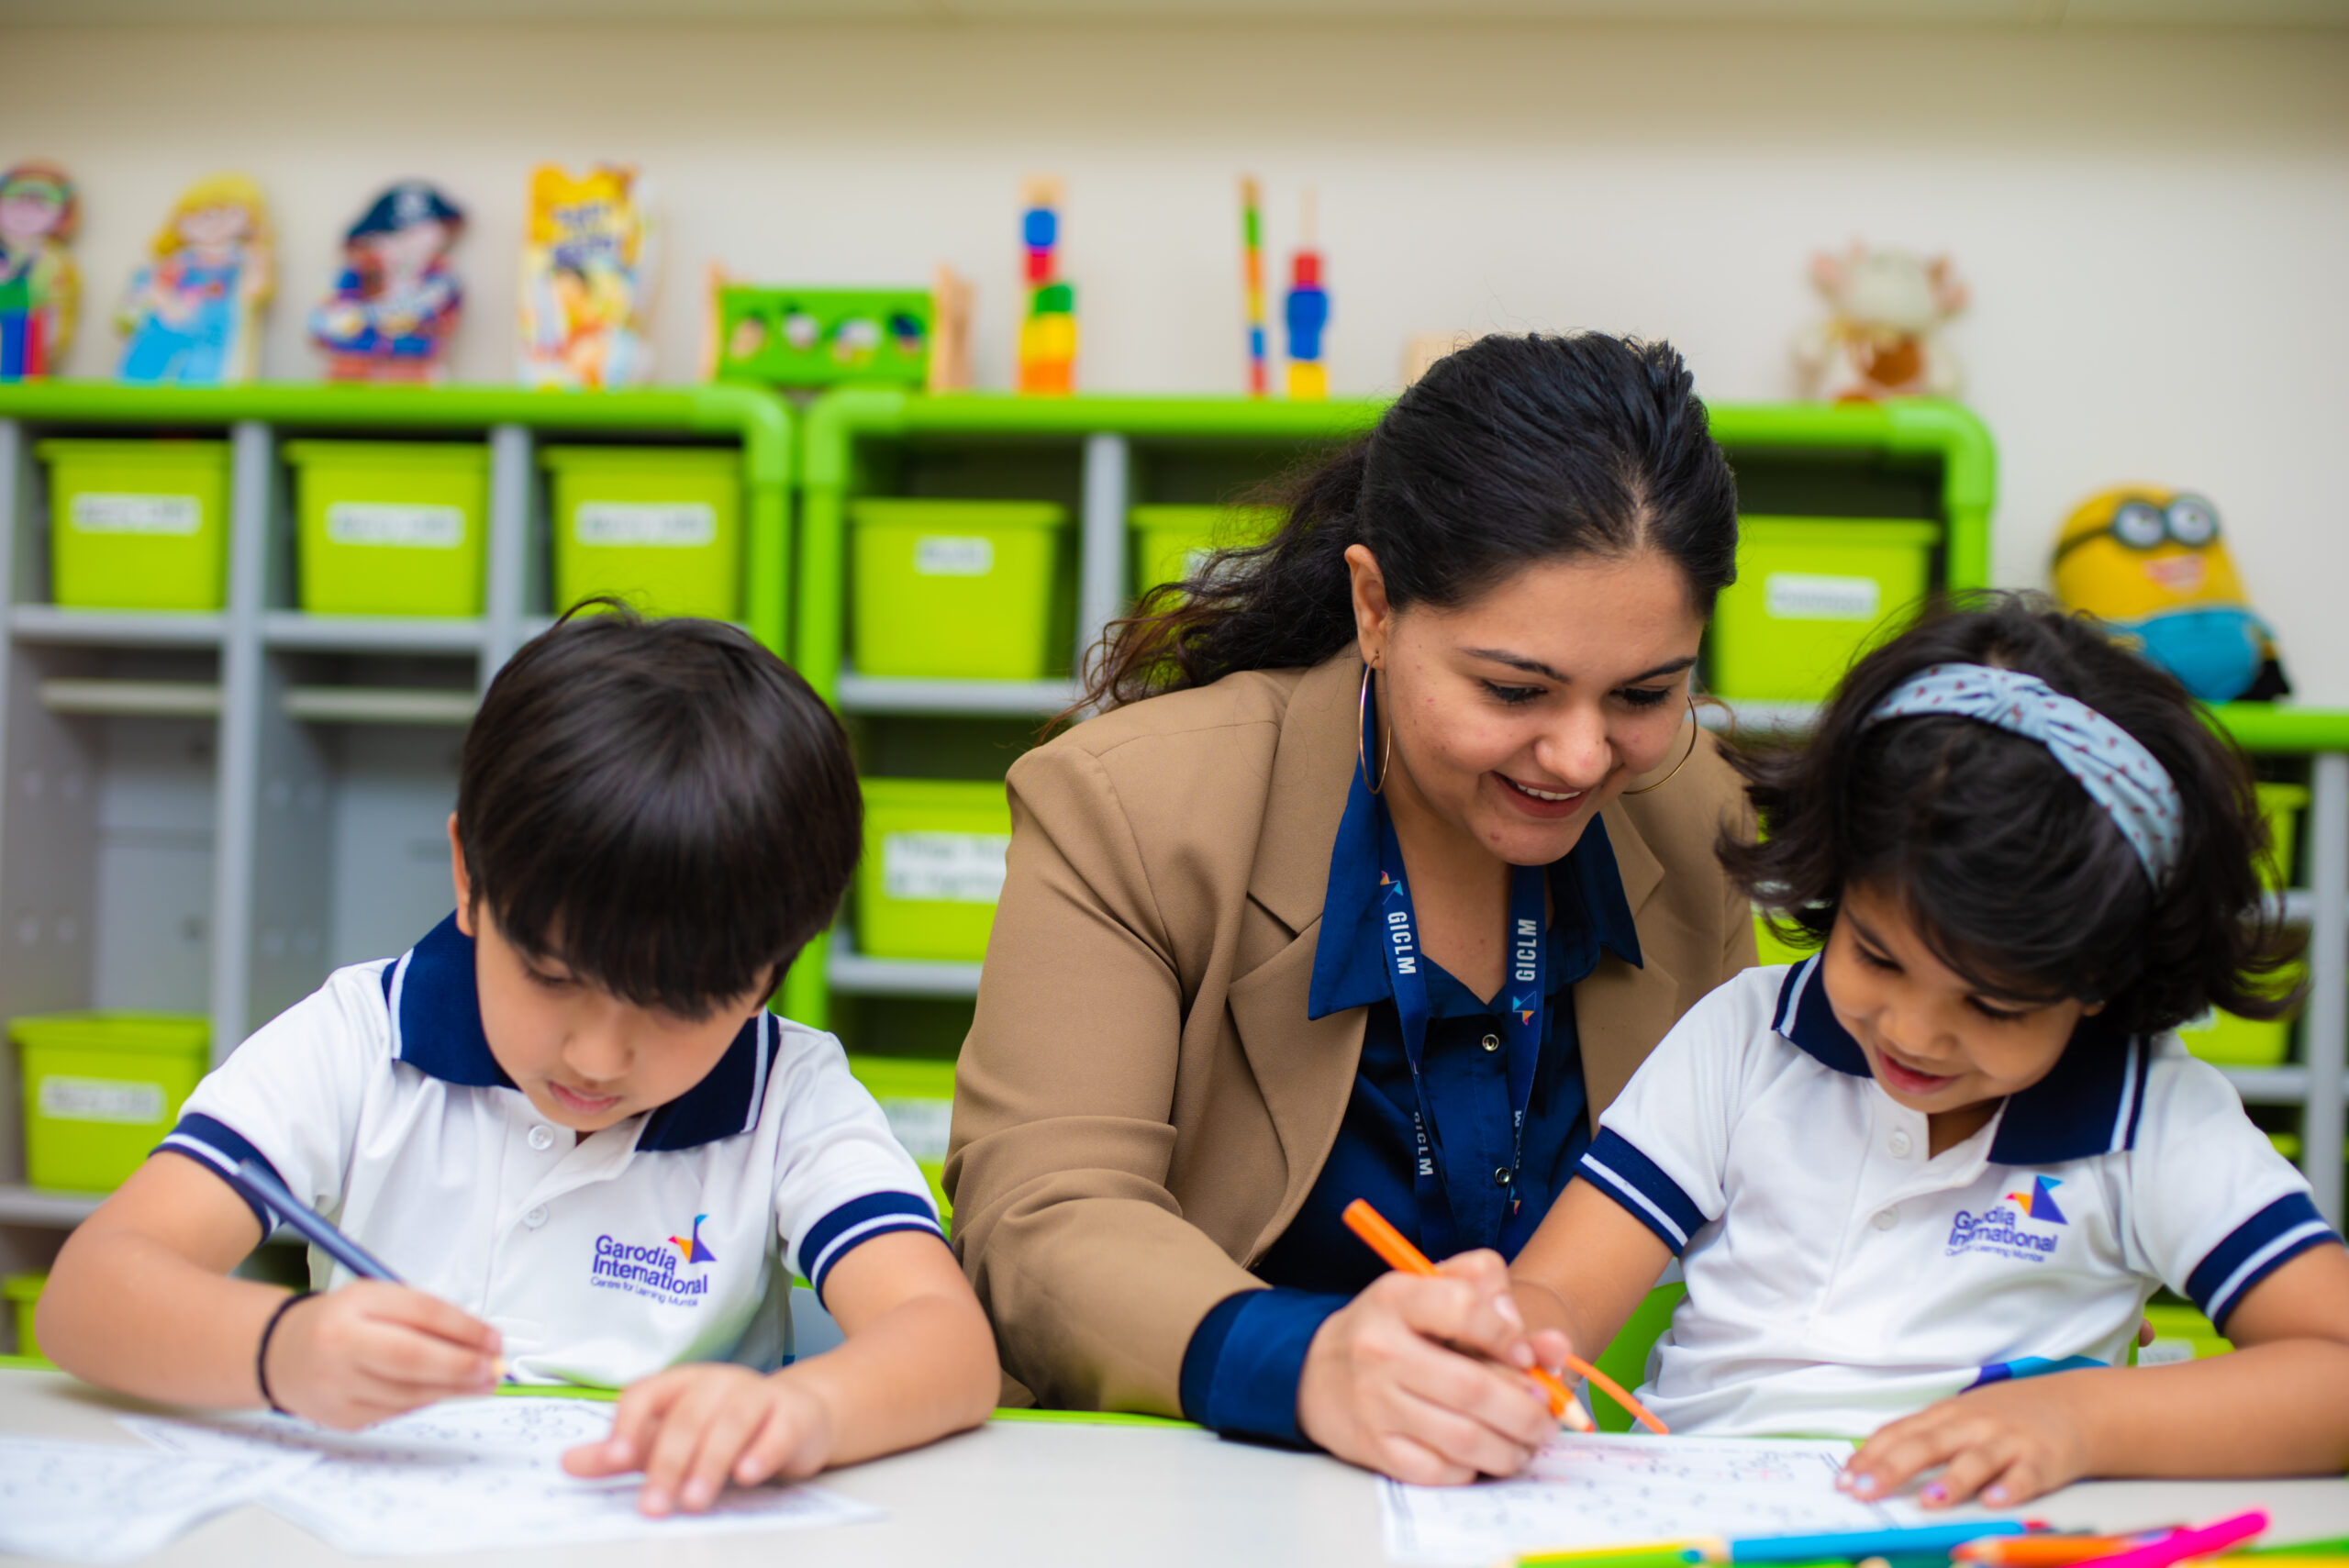 Garodia FinlandWay® is looking for a Head of Early Education in Mumbai, India